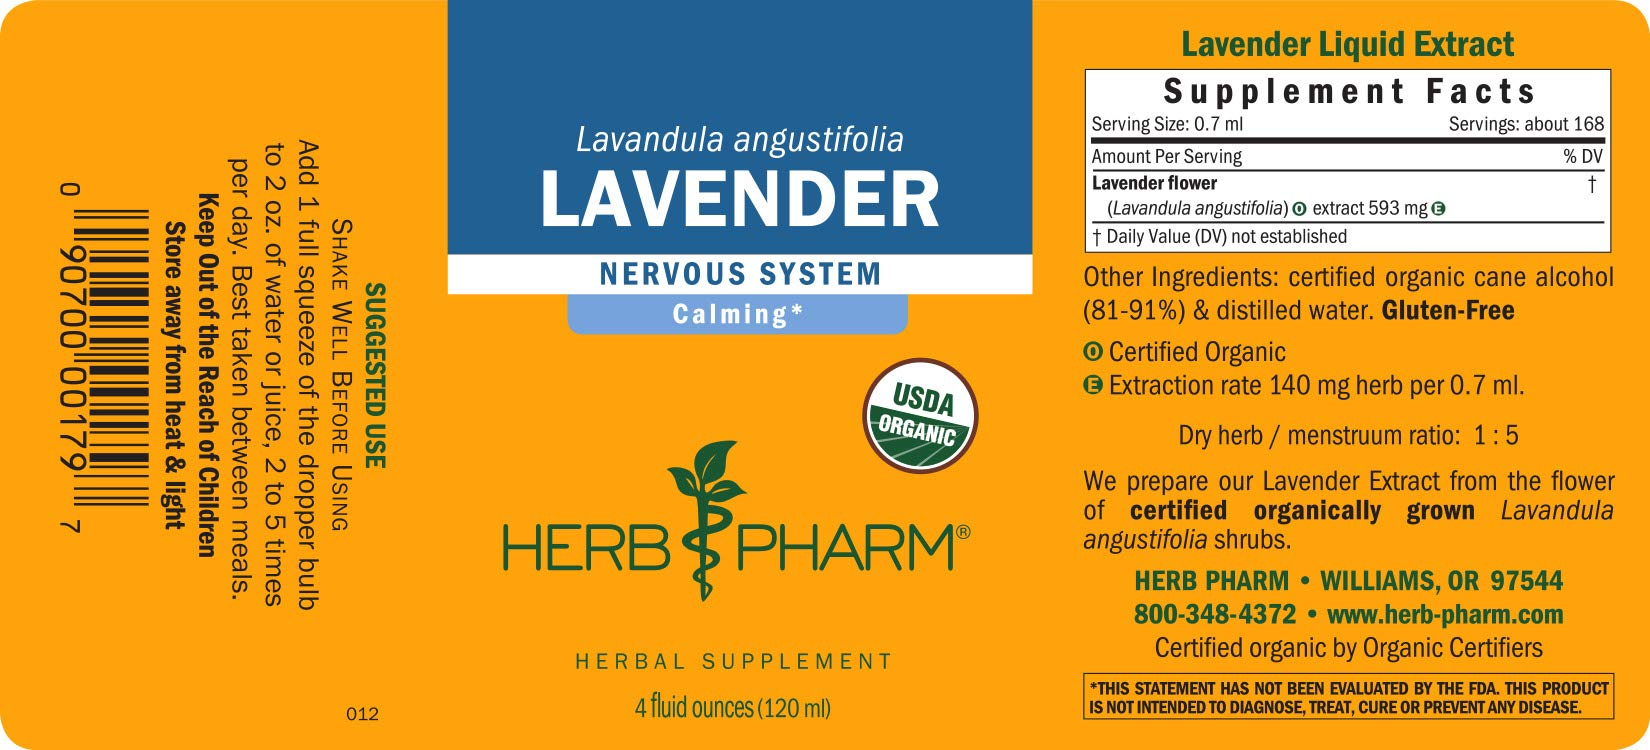 Herb Pharm Certified Organic Lavender Flower Liquid Extract for Calming Nervous System Support - 4 Ounce by Herb Pharm (Image #2)